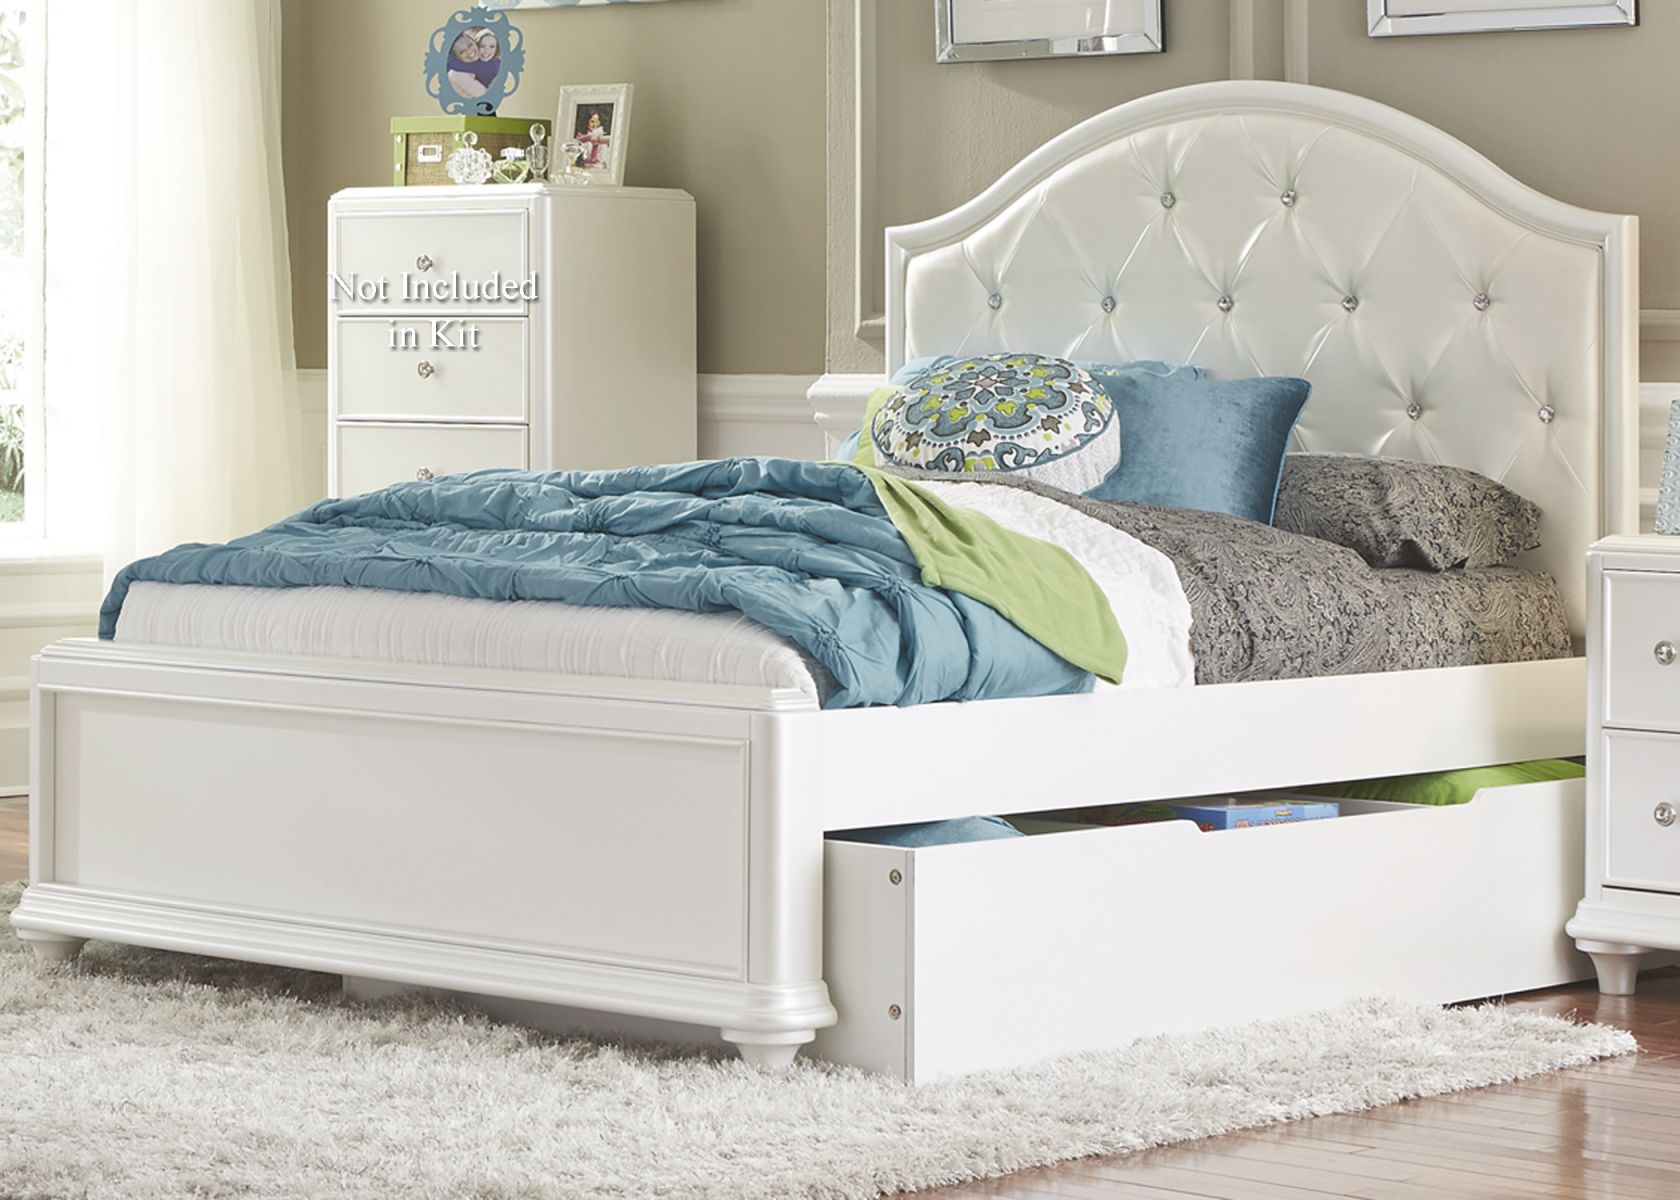 Algrenon Twin Platform Bed With Trundle Wa | Hbgauthority intended for Awesome Full Size Bed With Trundle Bedroom Set